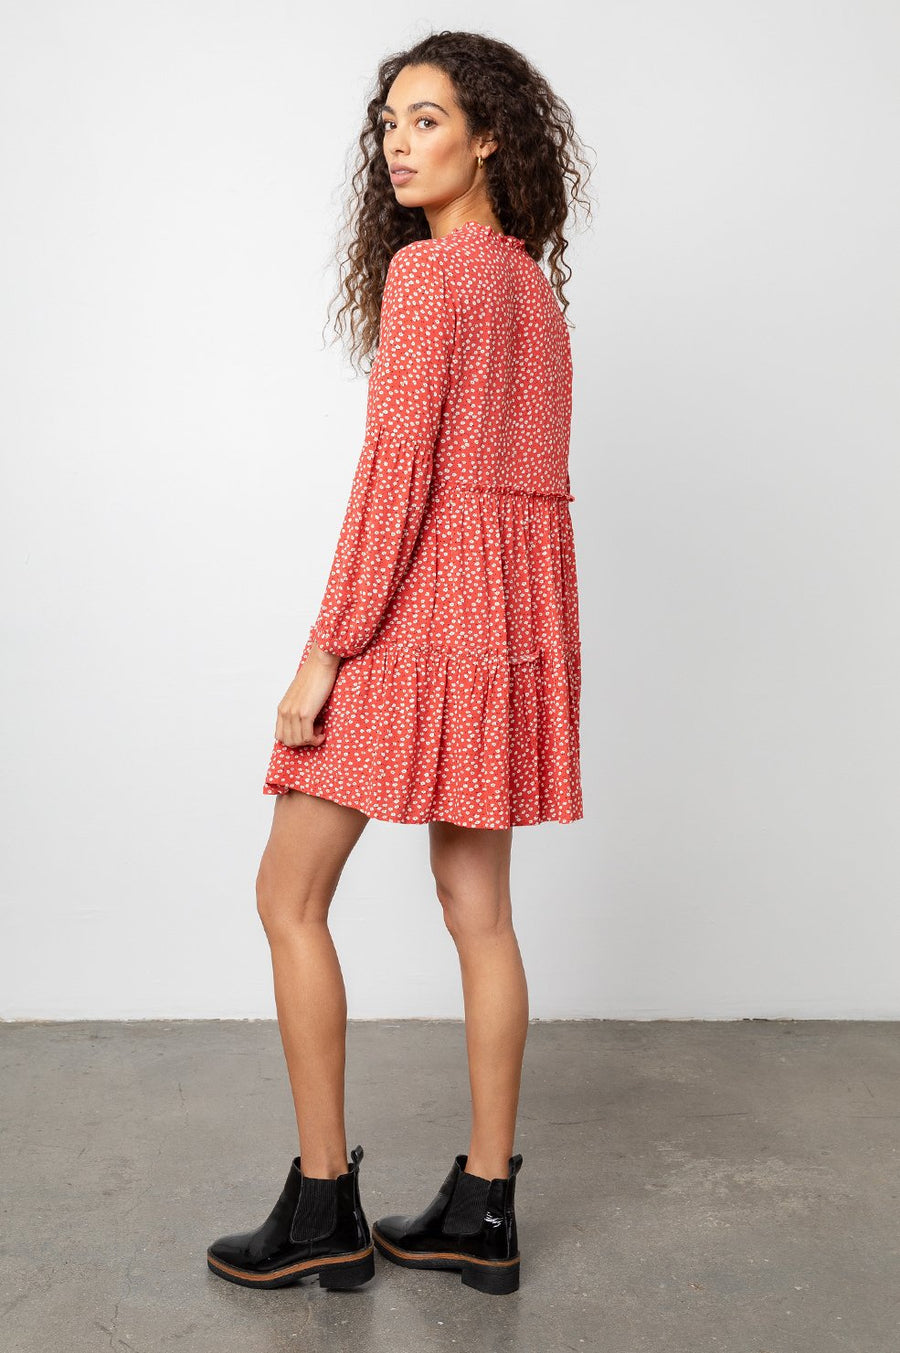 Everly Dress - Carmine Dress